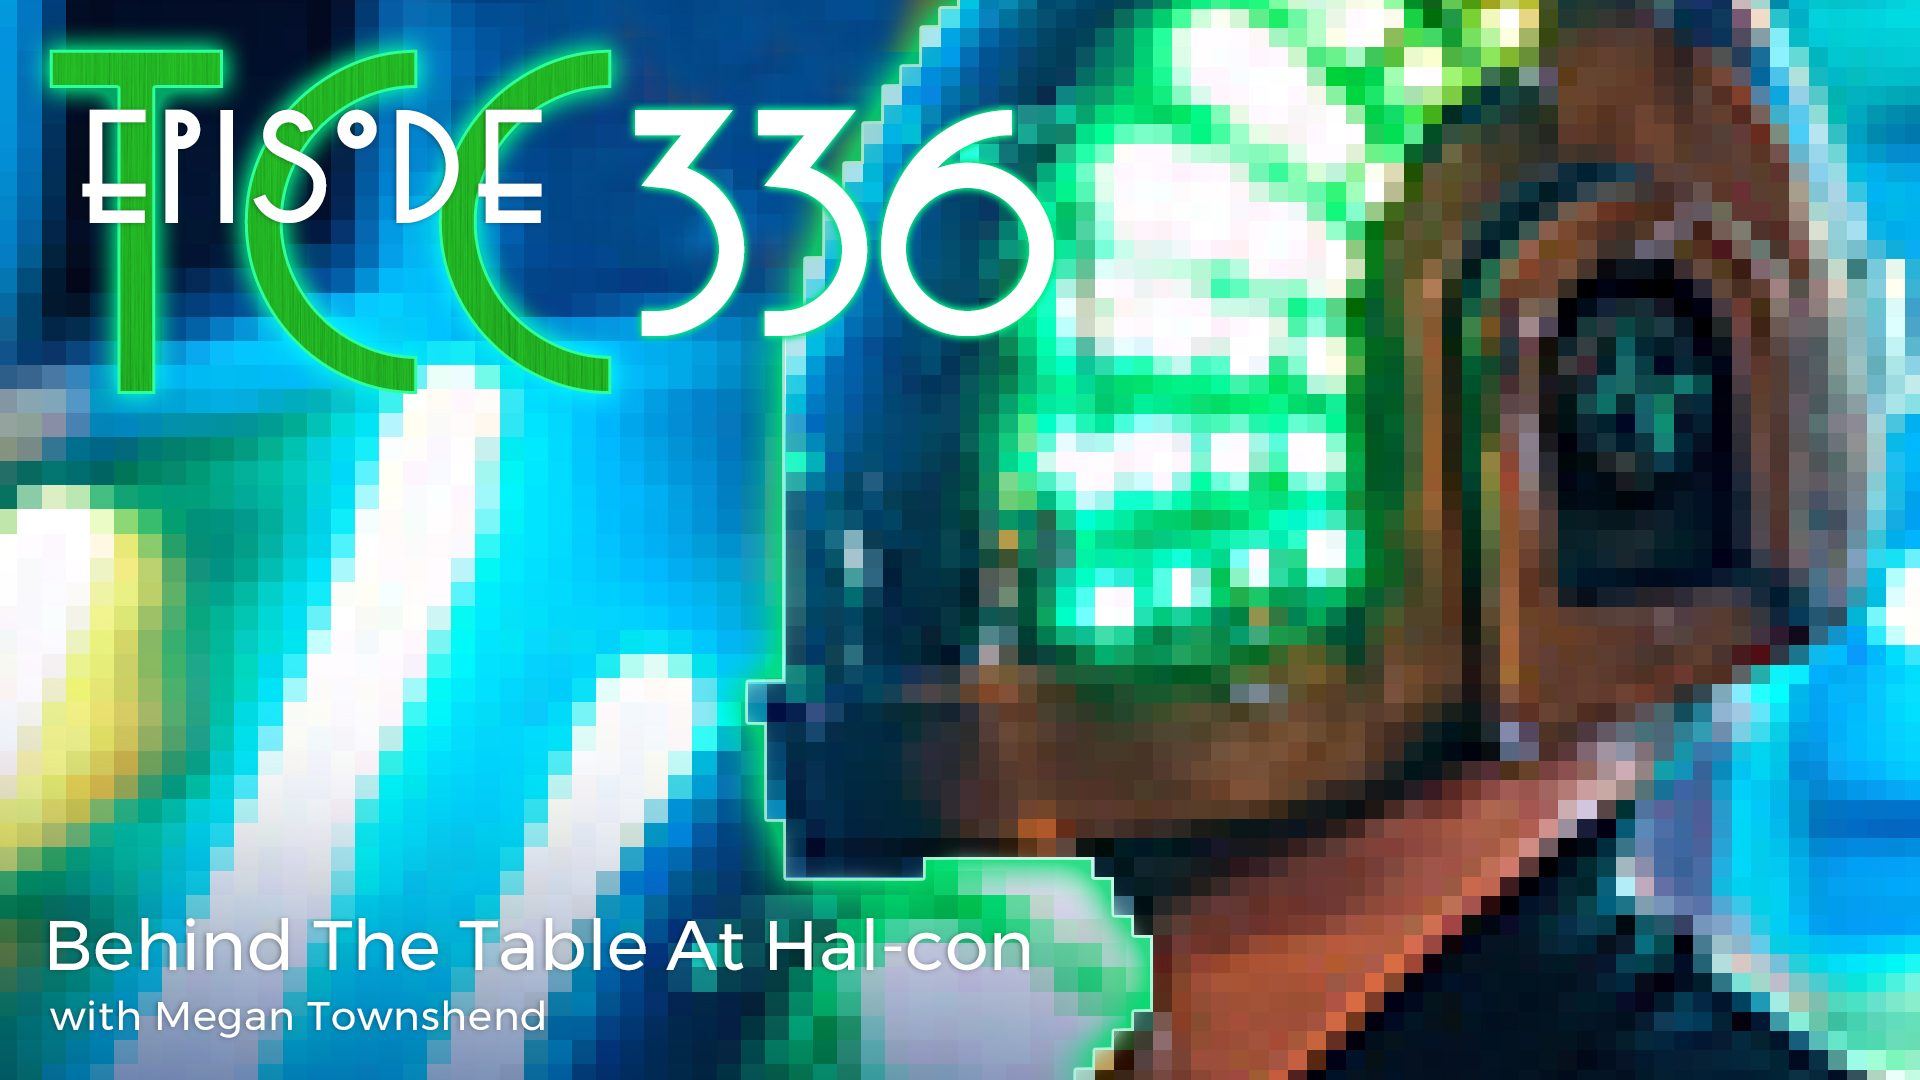 The Citadel Cafe 336: Behind The Table At Hal-Con